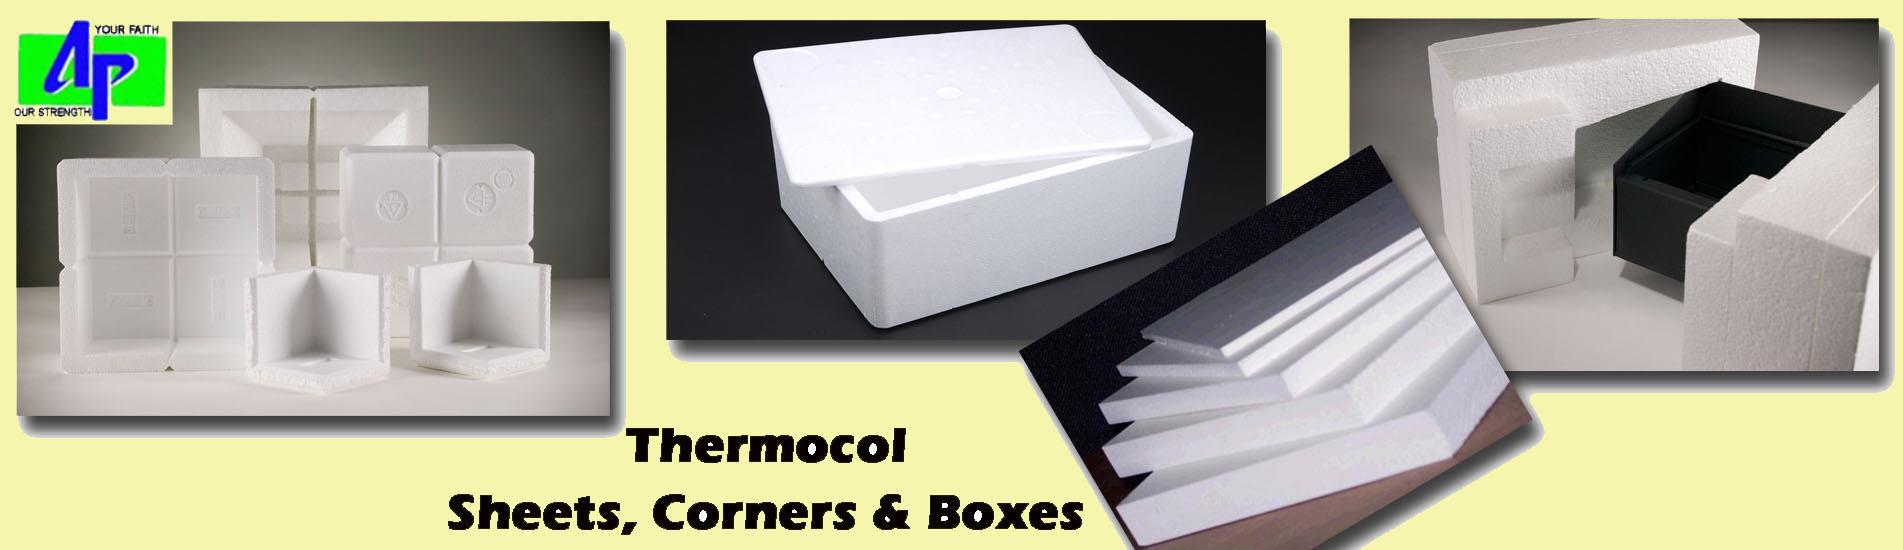 Arihant Packaging the leading manufacturer & supplier of Thermocol Packaging....from Jaipur, Rajasthan, India....   One of the protective packaging method... Thermocol Packaging ......  Thermocol Sheets, Thermocol Boxes & Thermocol Corners...   Mainly used for packaging of delicate & semi fragile items, which makes Thermocol Packaging a one of the best material for protective packaging...   Now a days also used in False Ceiling and Under Ceiling to avoid external radiation, best packaging solution with sound proofing & heat insulation..... It is very light weighted & very easy to carry...   Best Quality Packaging Material Provider Arihant Packaging... From Jaipur, Rajasthan, India....